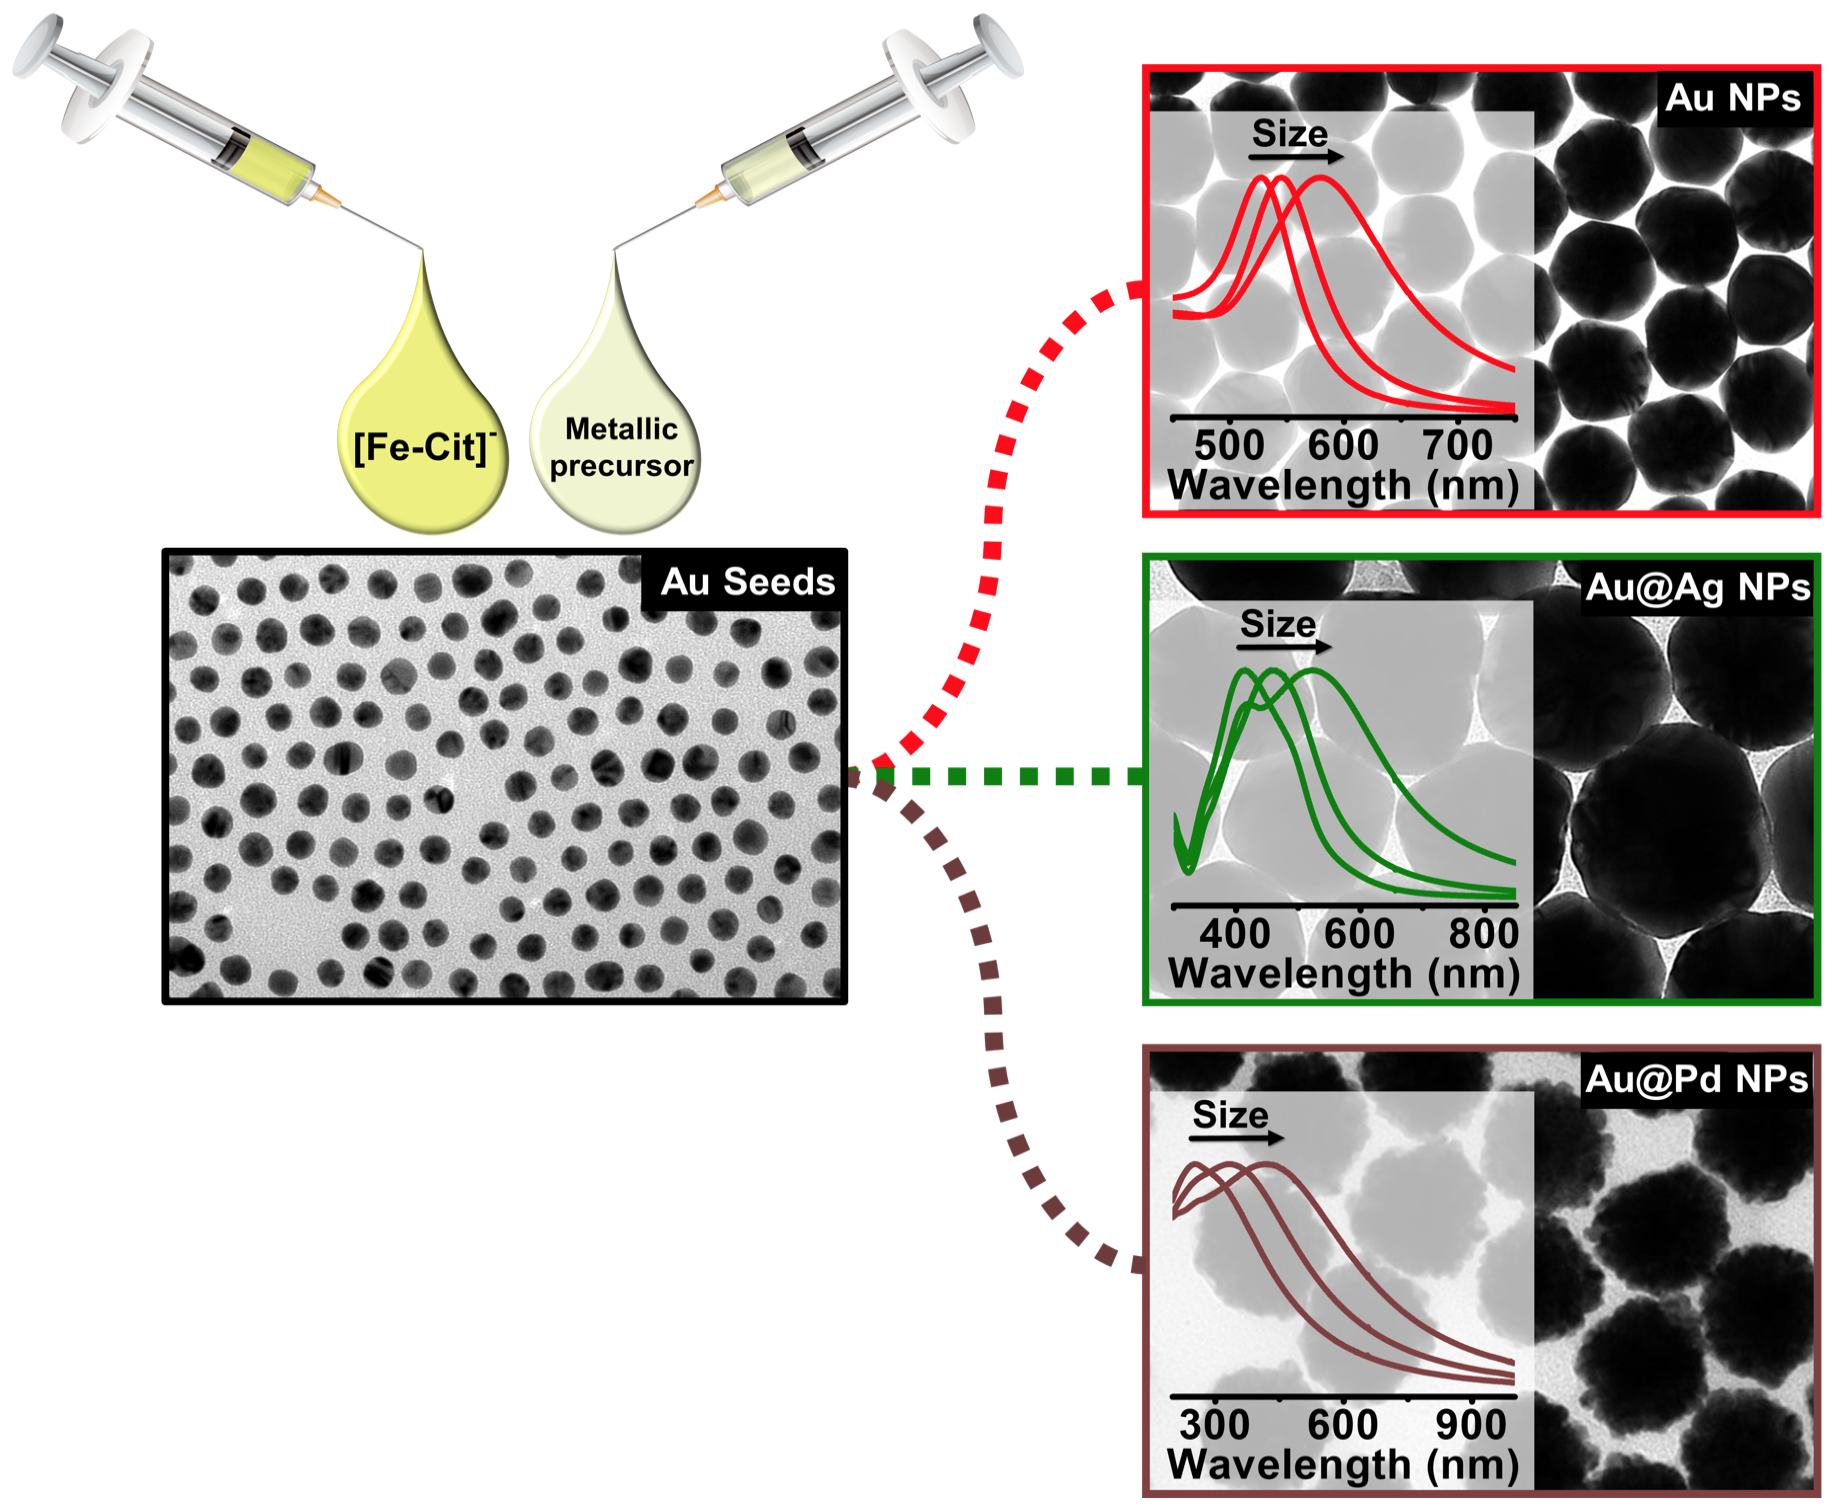 The versatility of Fe(II) in the synthesis of uniform citrate-stabilized plasmonic nanoparticles with tunable size at room temperature